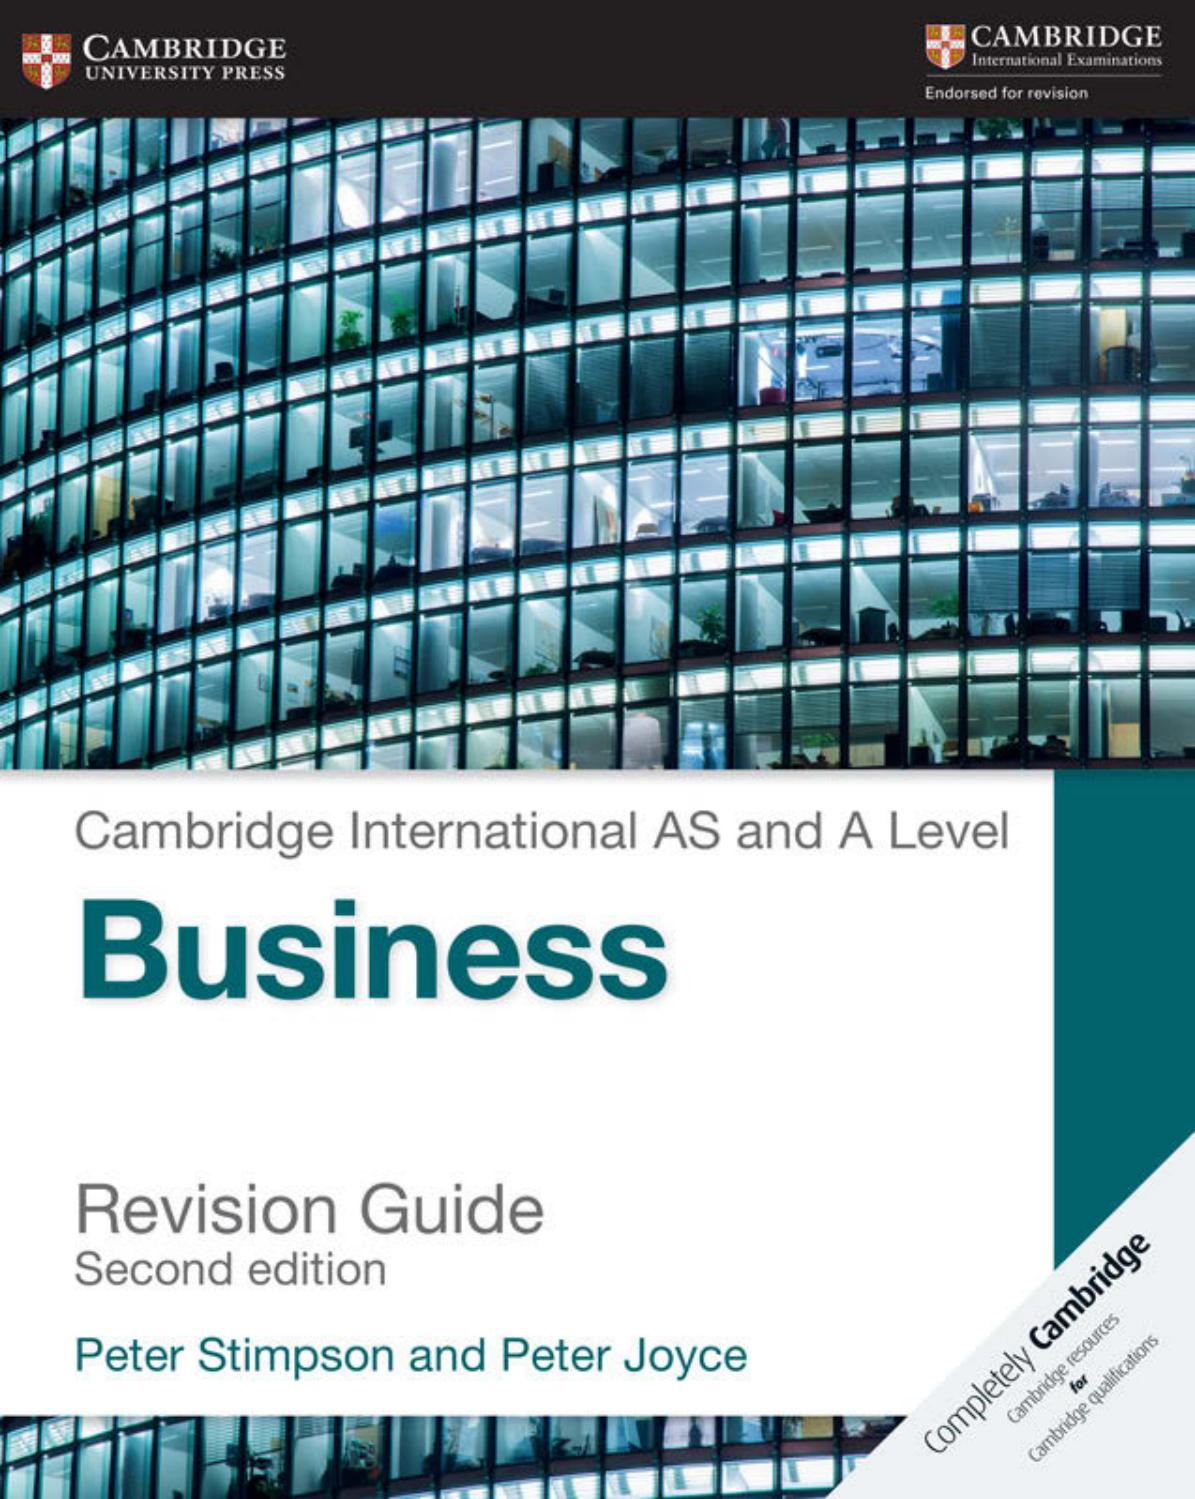 Preview Cambridge International As And A Level Business Revision Guide By Cambridge University Press Education Issuu